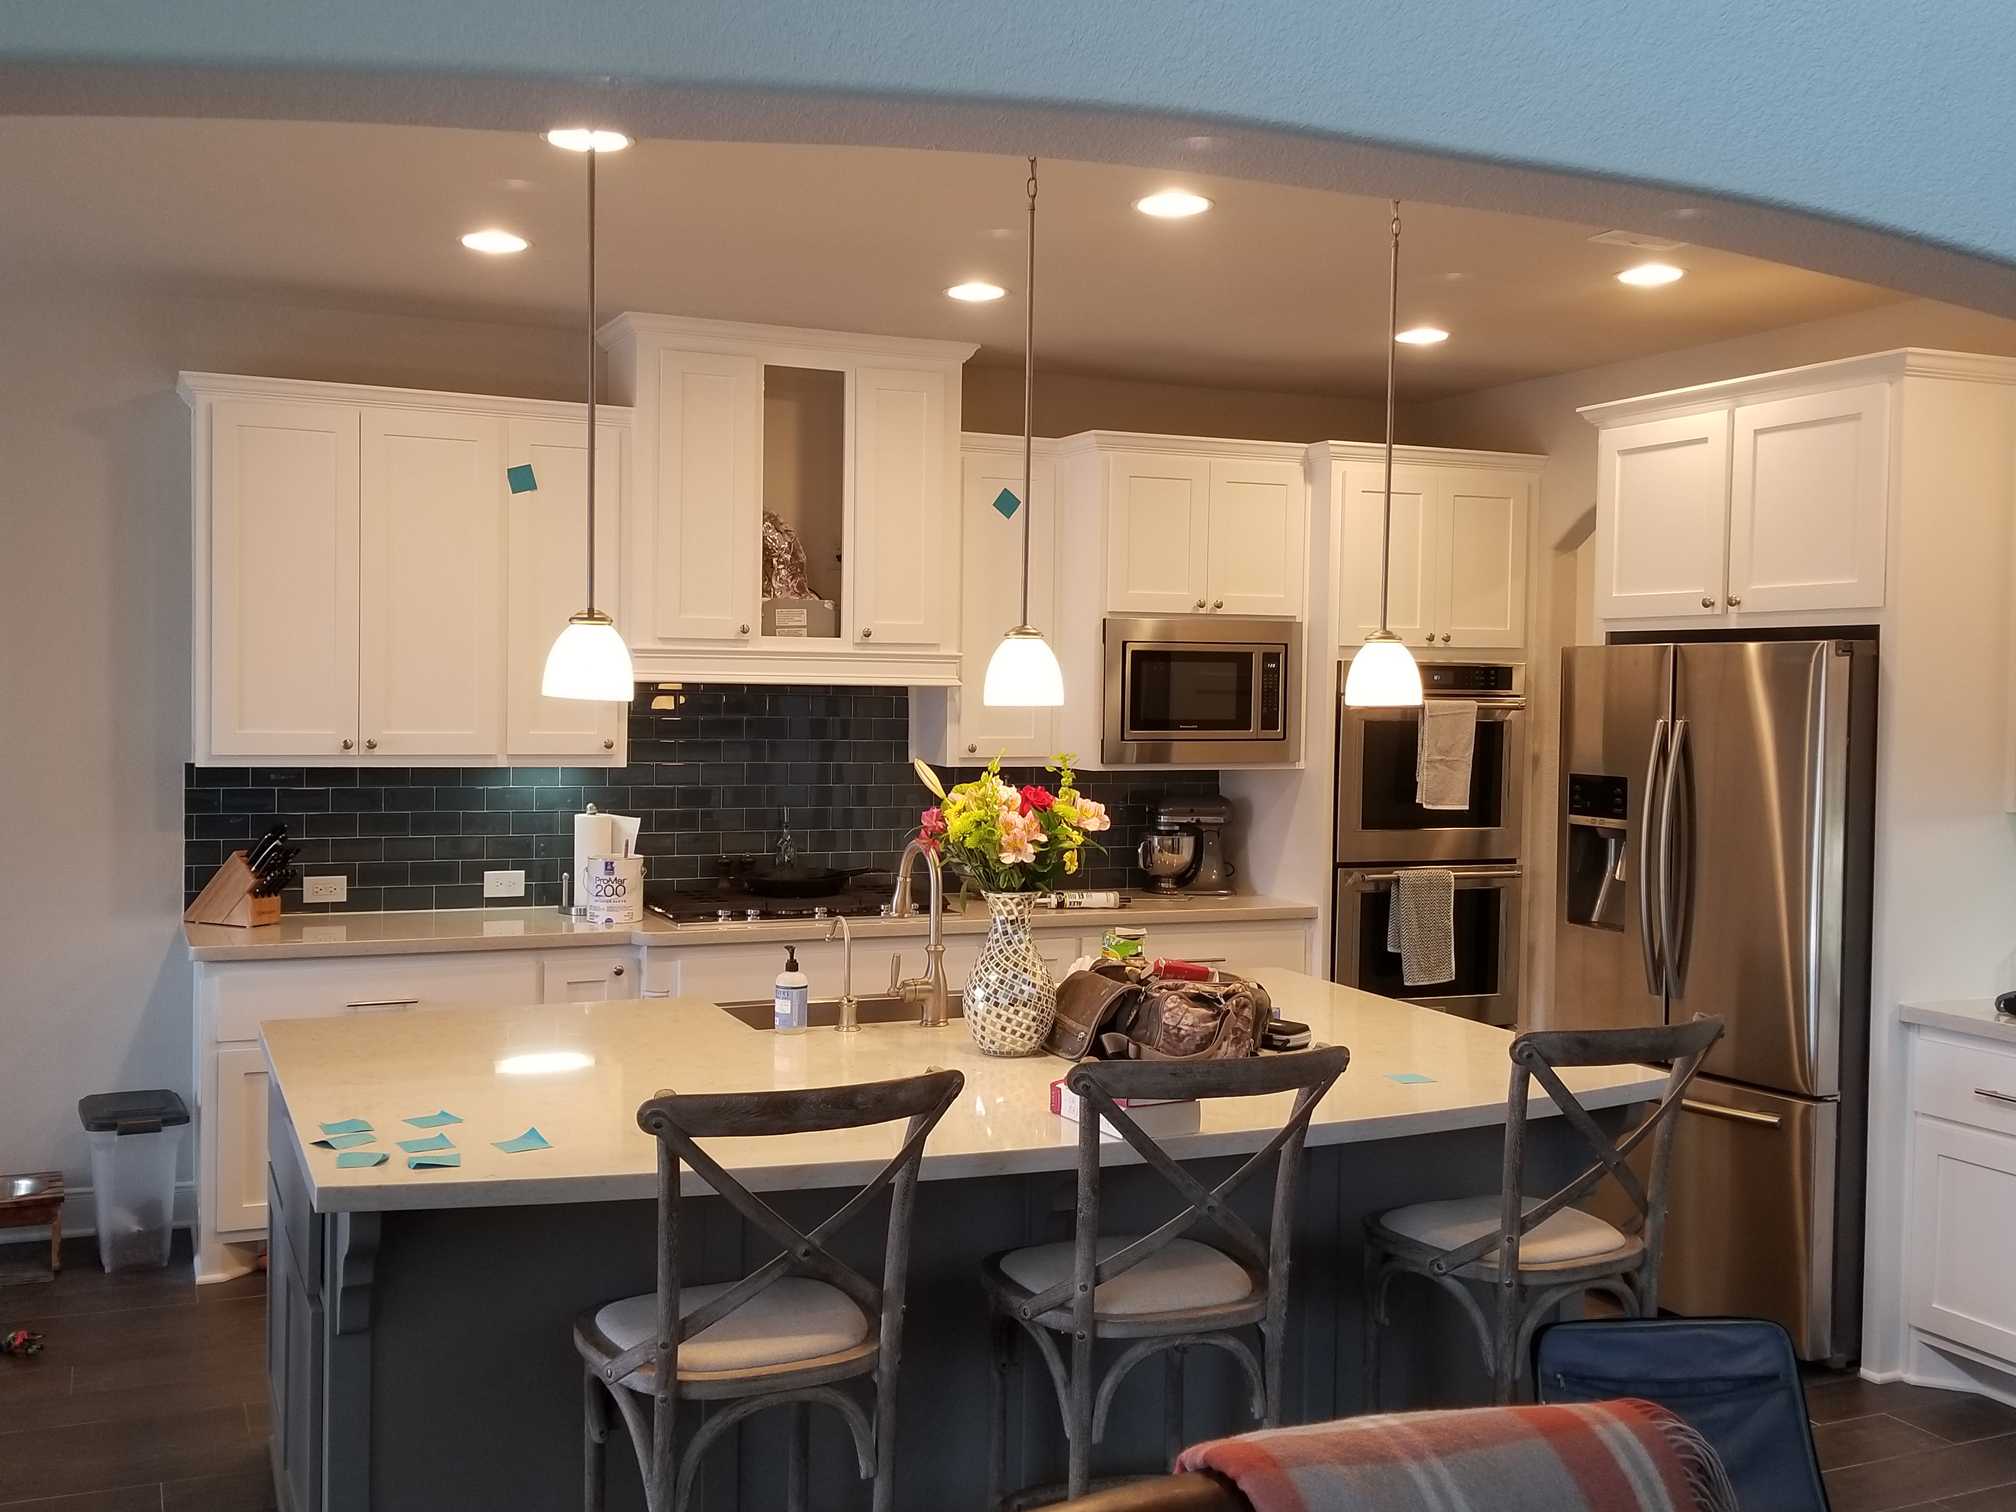 Buy custom kitchen cabinets factory direct in Englishtown NJ, Buy custom bathroom cabinets in Englishtown NJ, Buy custom shaker cabinets in Englishtown NJ, Buy custom craftsman cabinets in Englishtown NJ